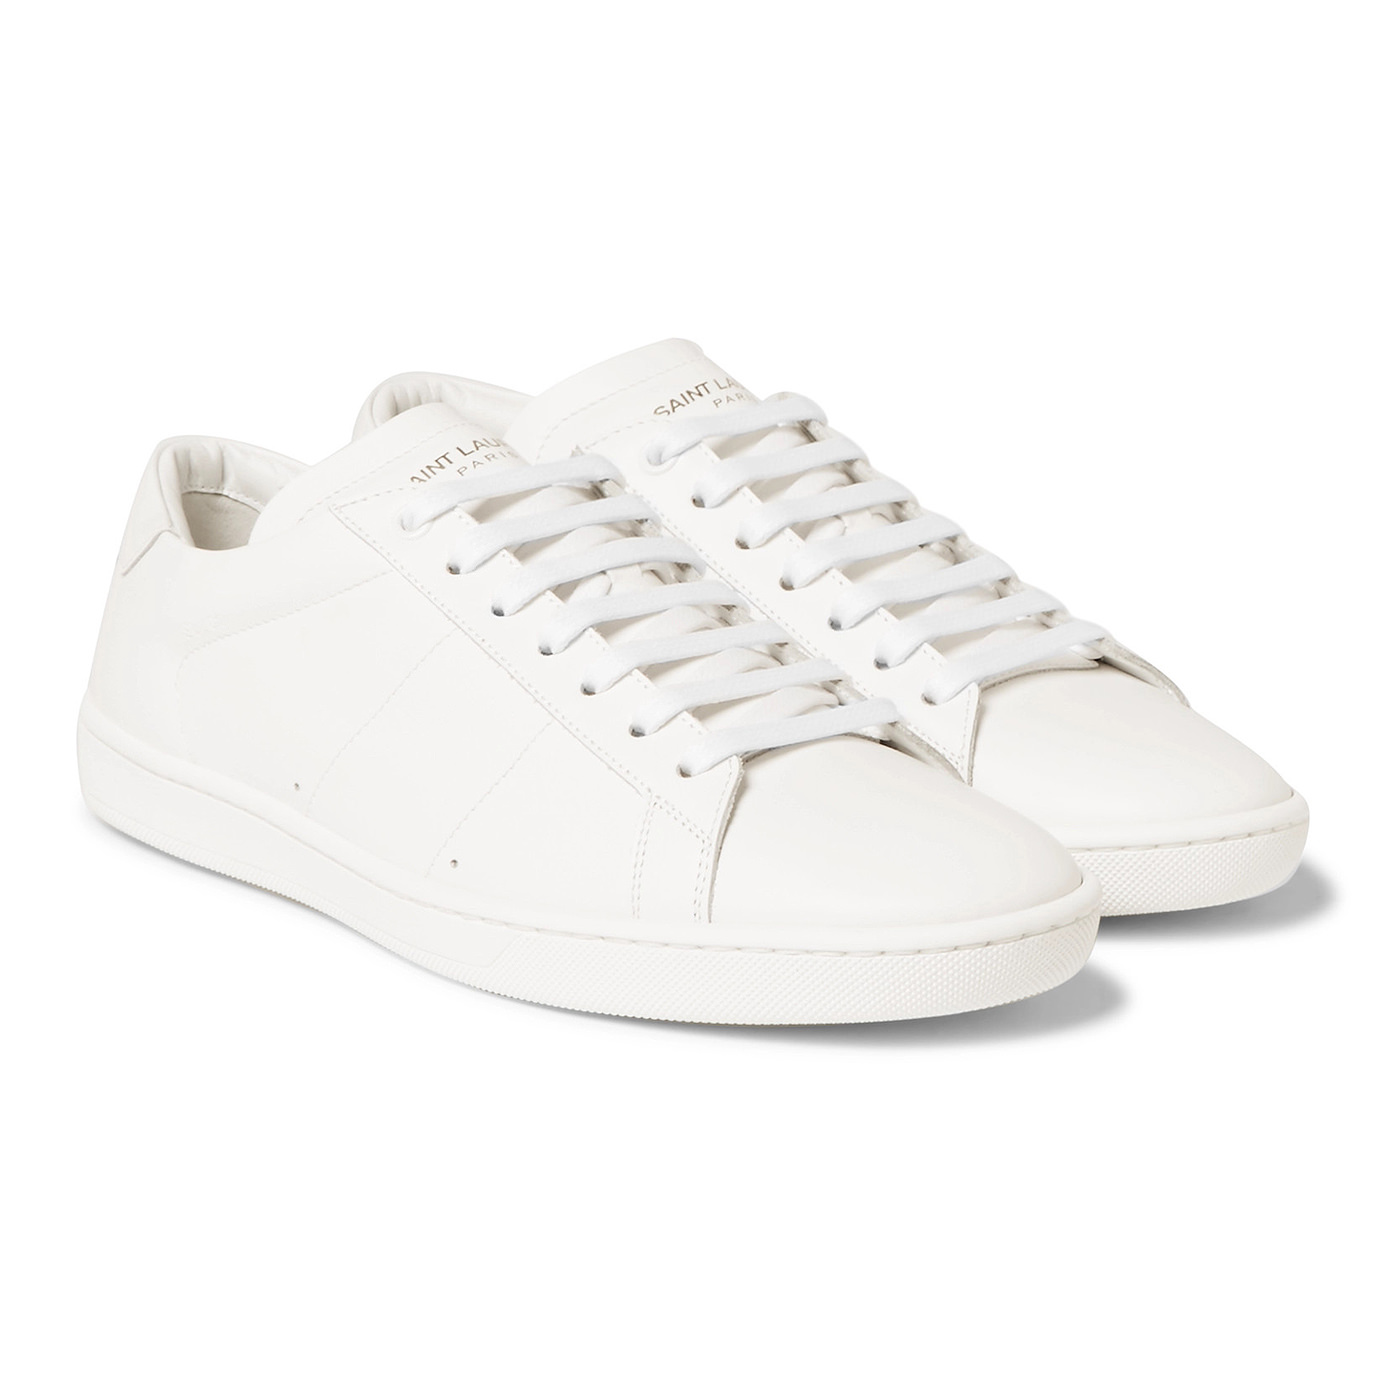 Style Mr Porter Sneakers Saint Laurent Cuir Blanc